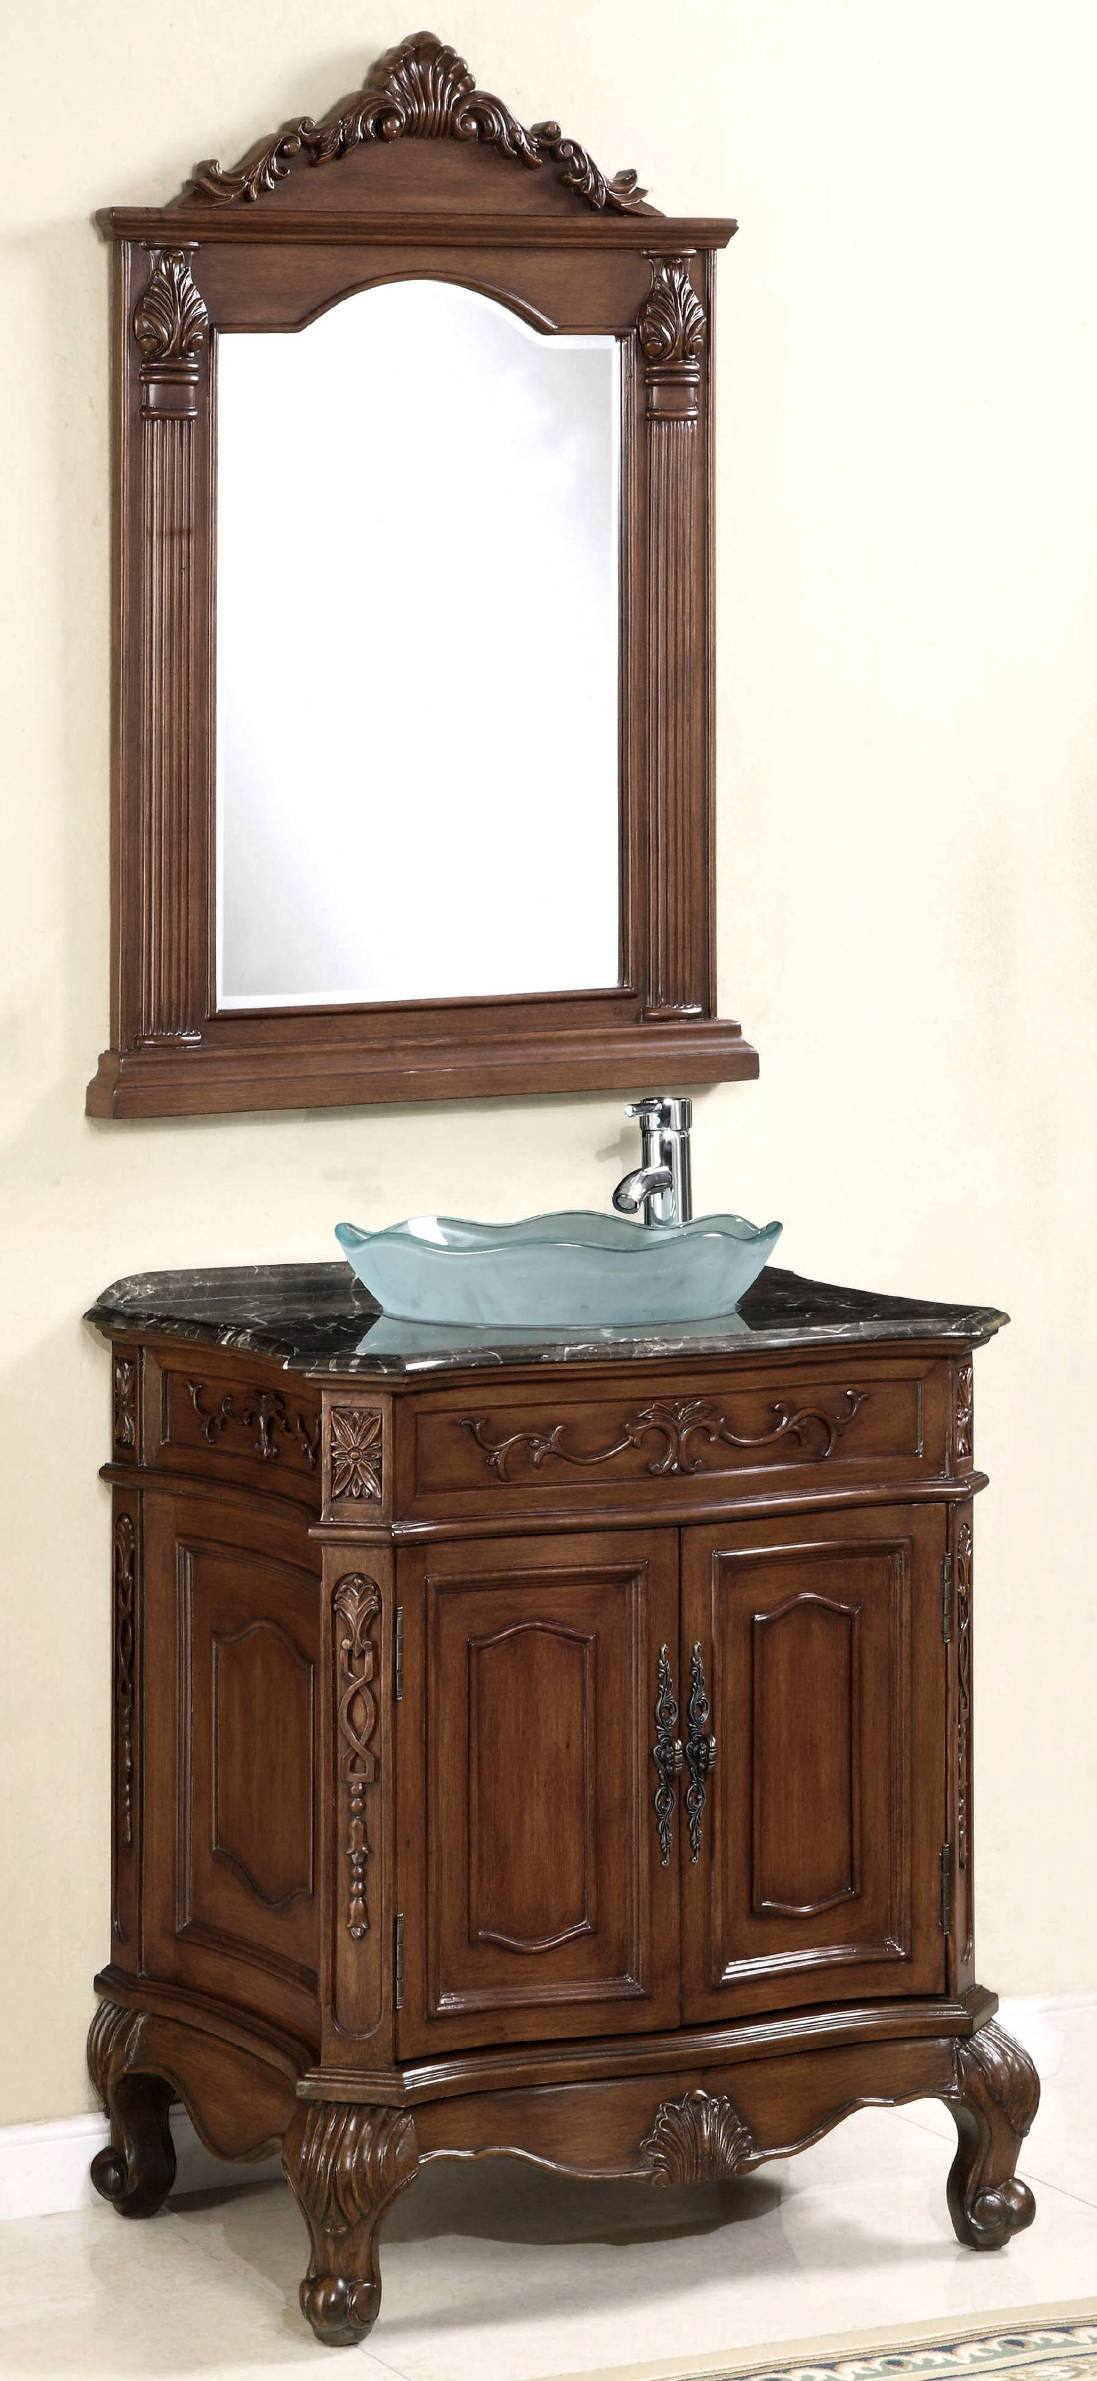 . 29 inch Vanity Set   Vanity with Mirror   Vessel Sink Vanity